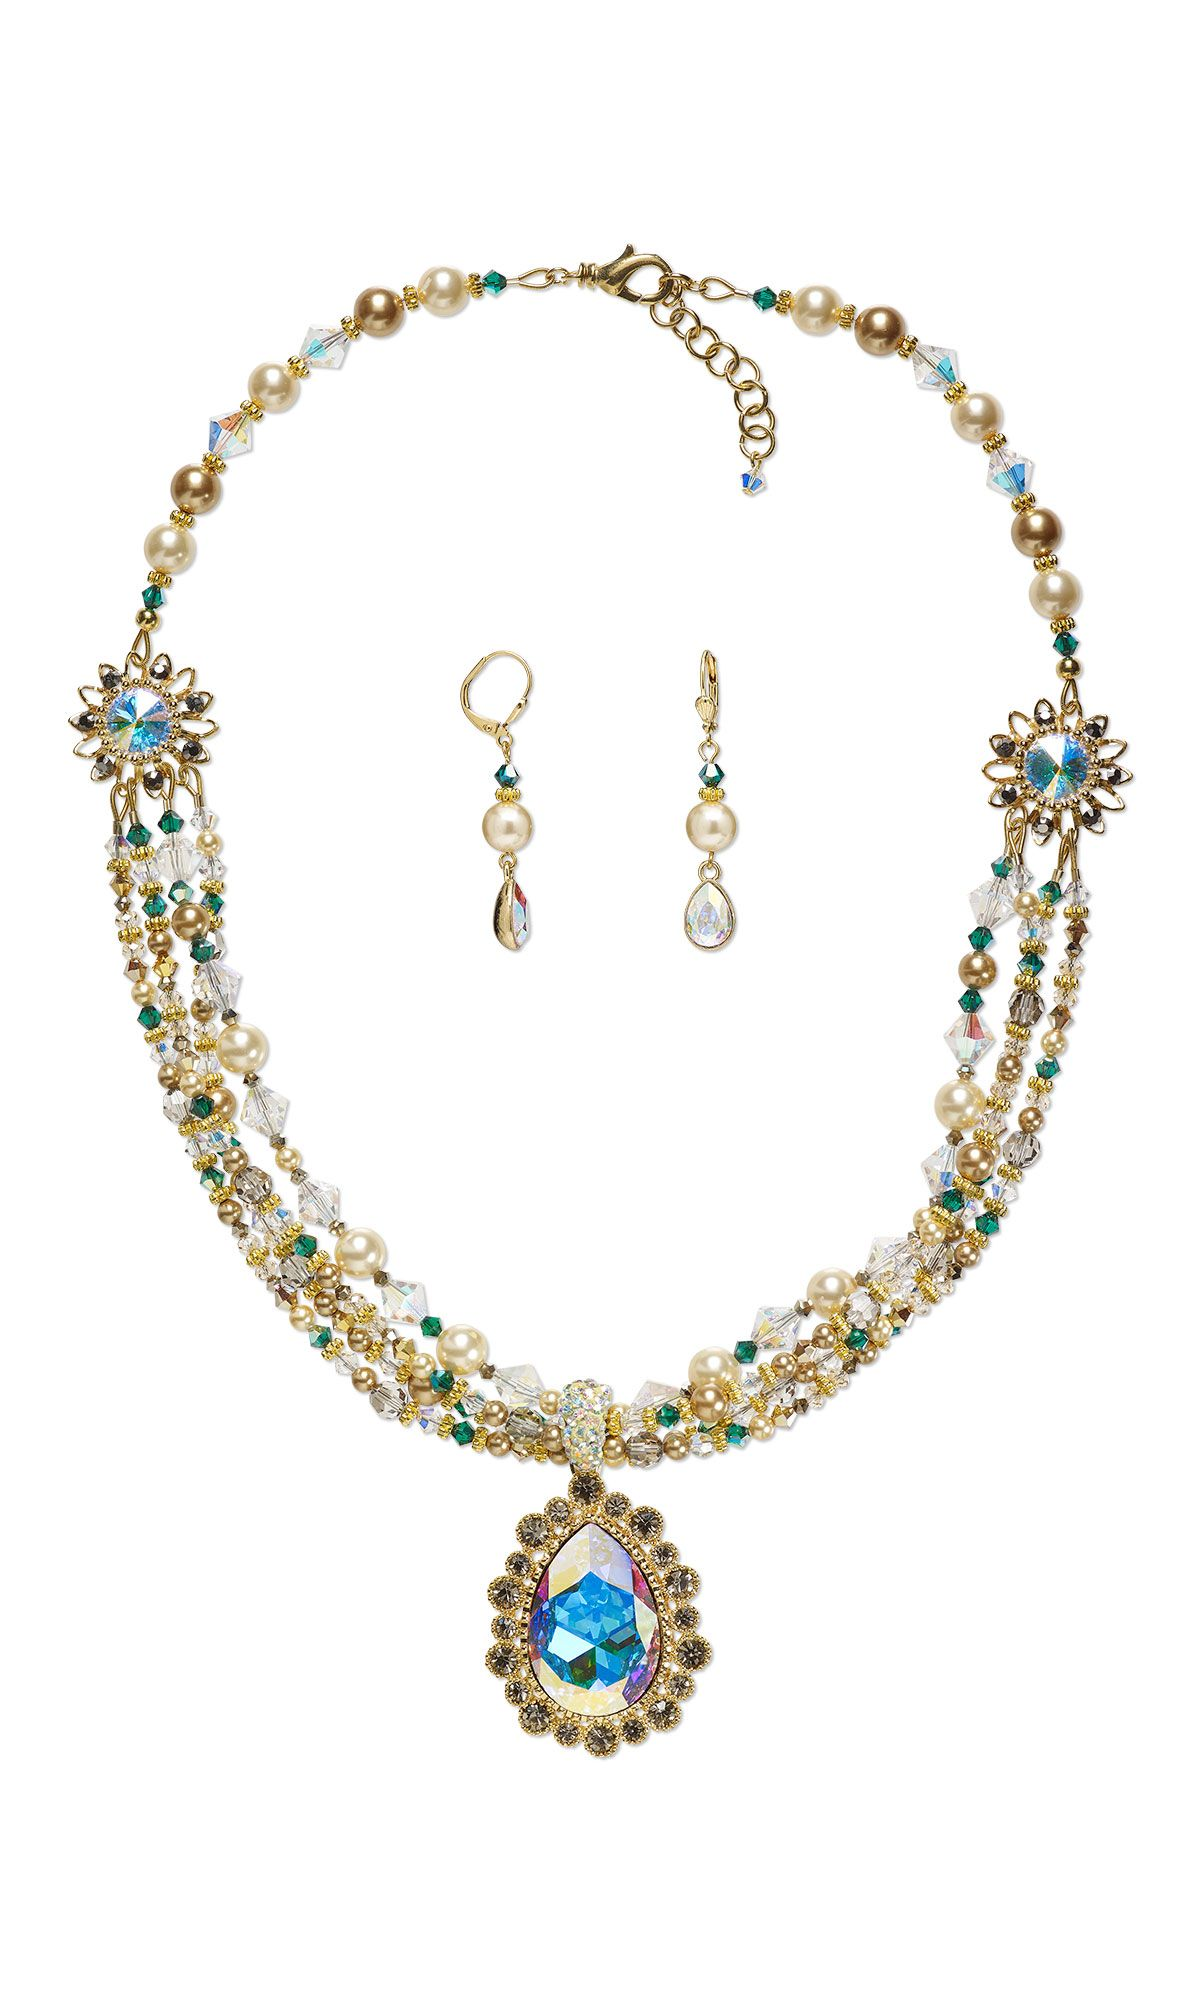 77552cb7446a Jewelry Design - Multi-Strand Necklace and Earring Set with Swarovski®  Crystals